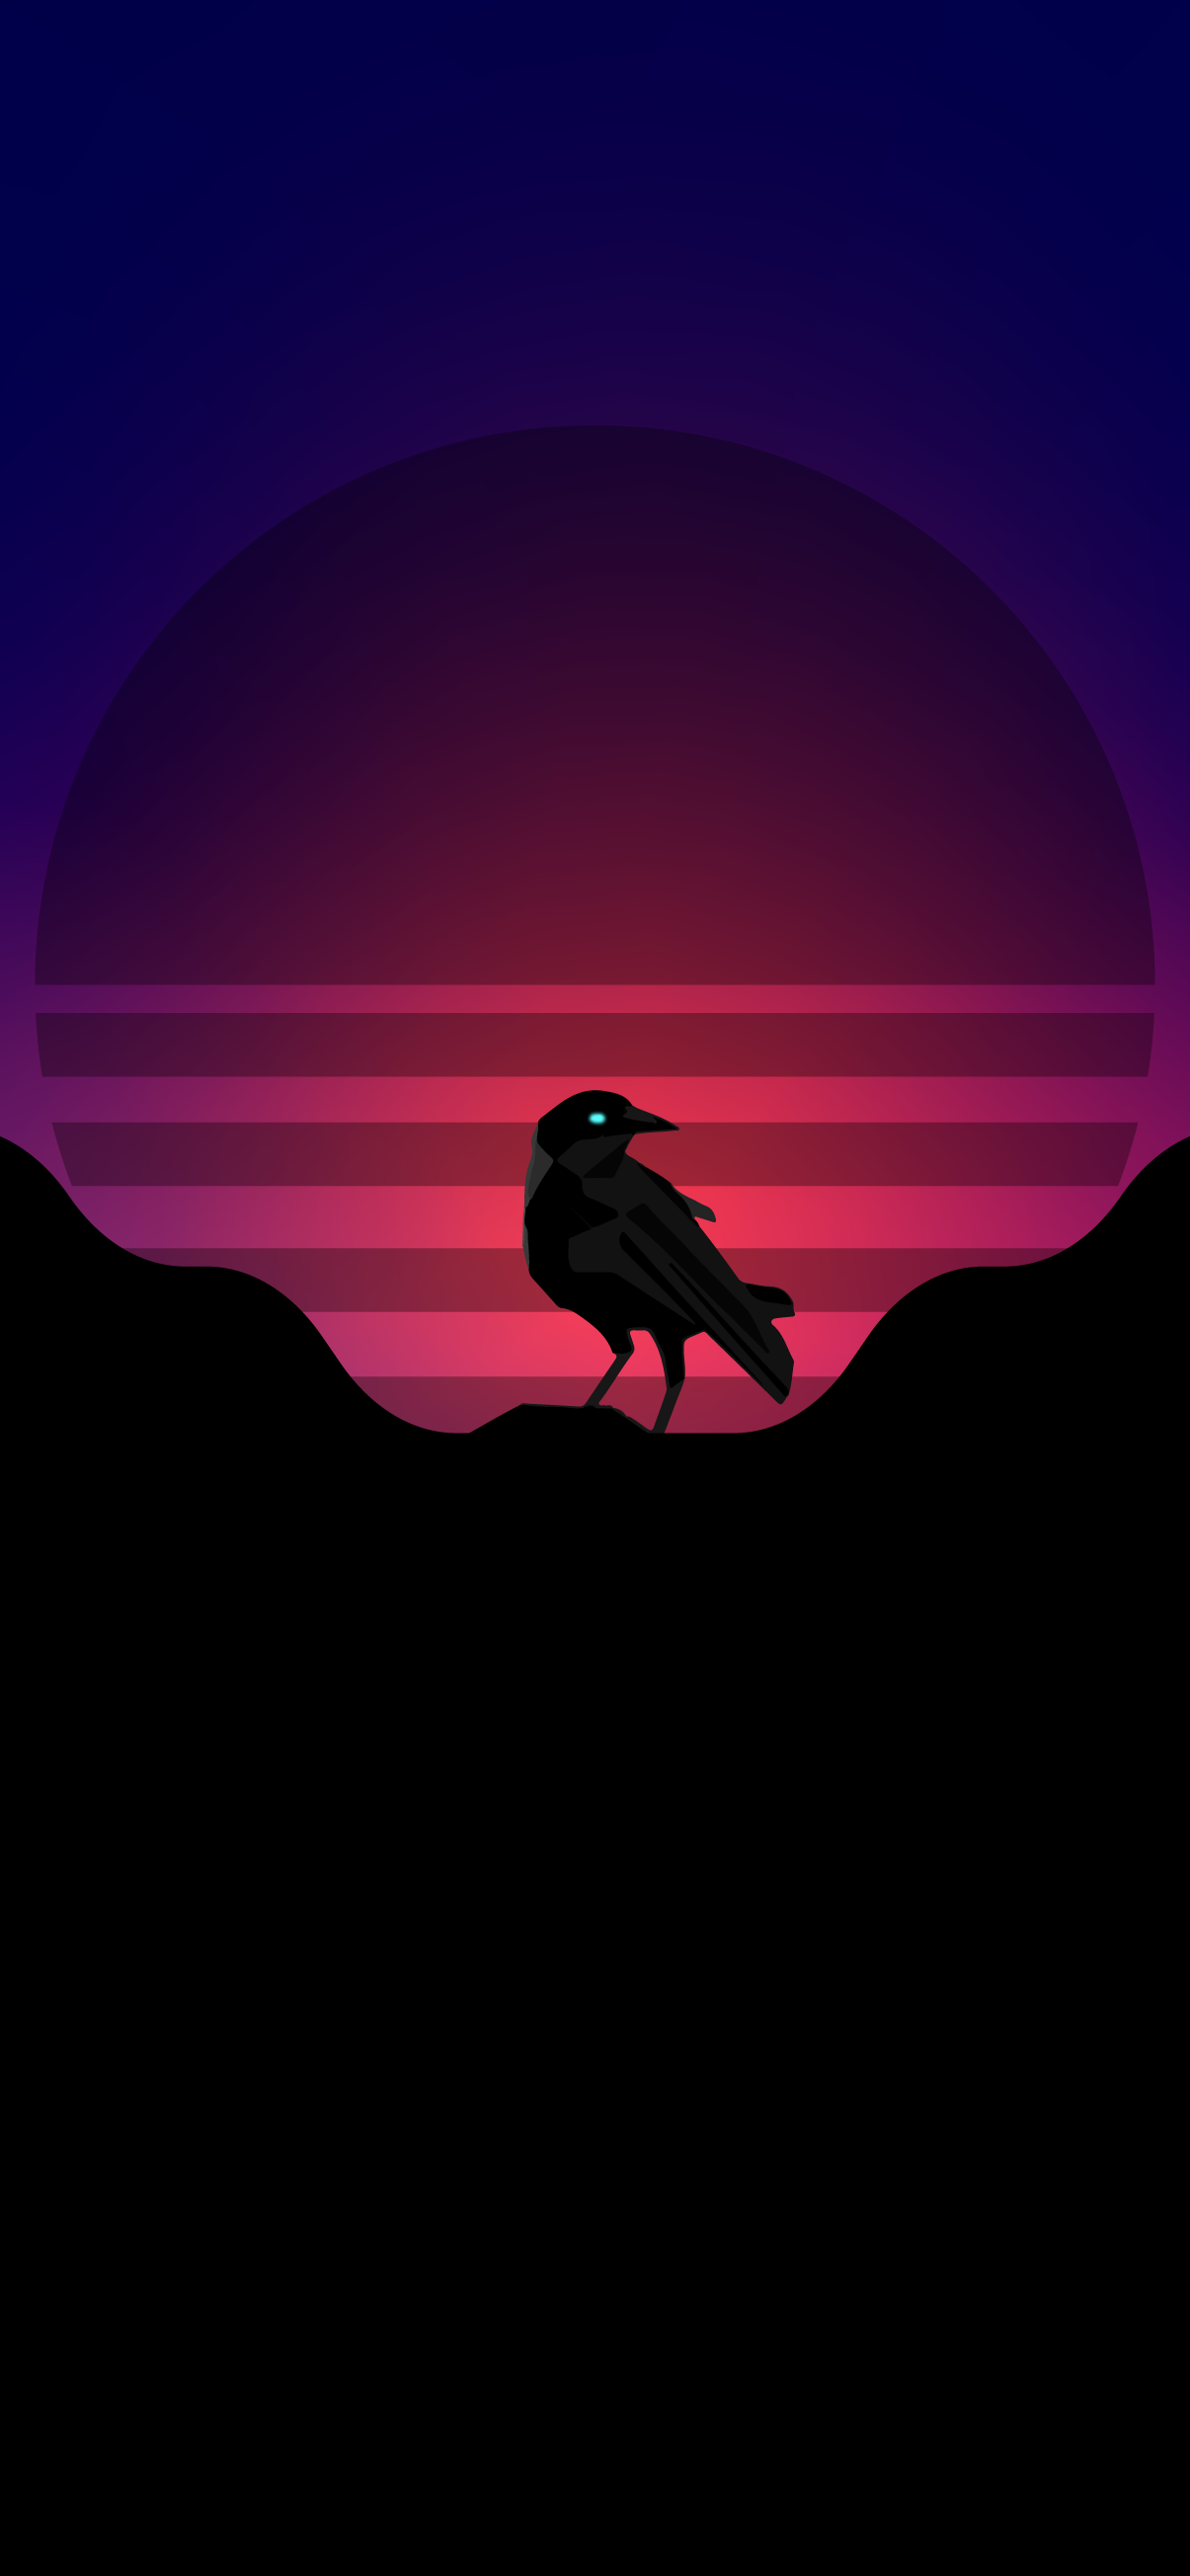 Synthwave style crow wallpaper 4k synth style background wallpaper